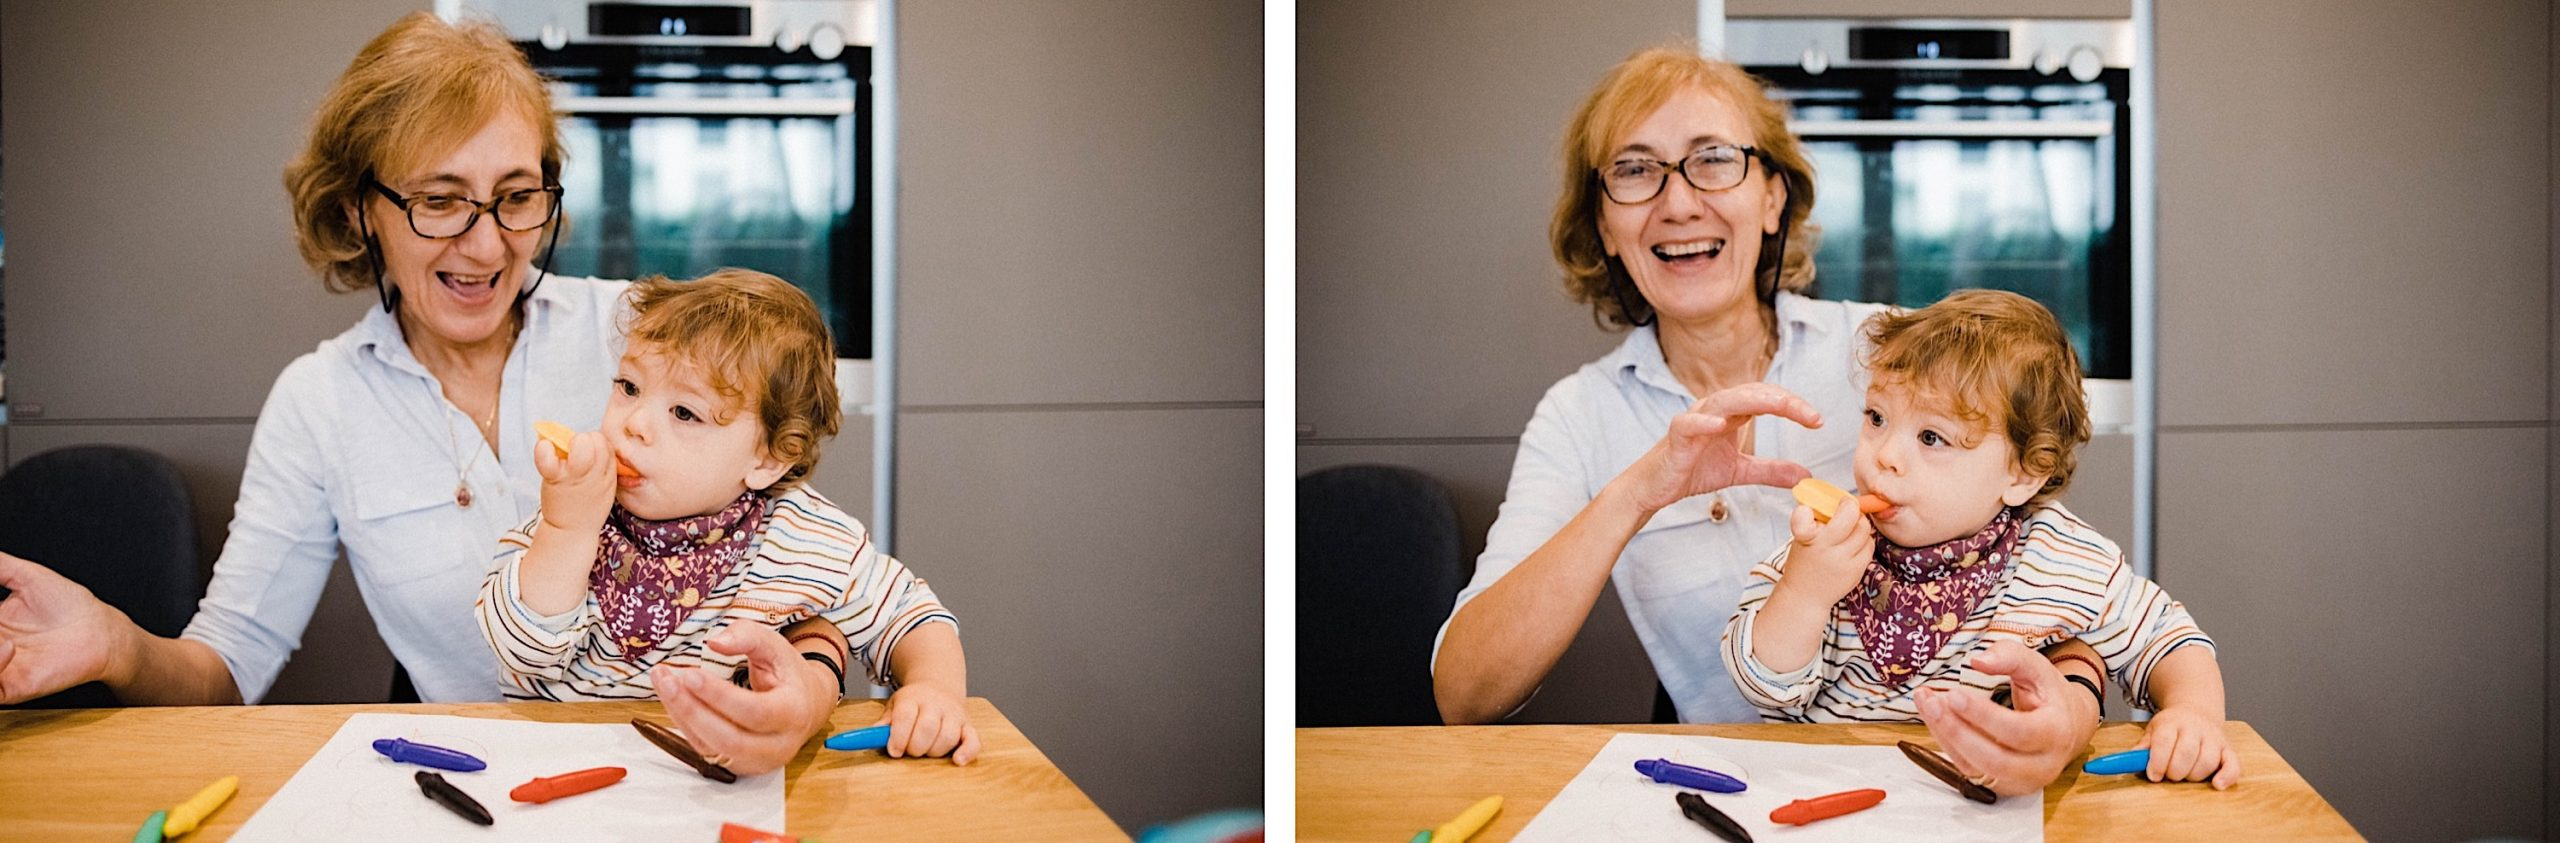 Two photos of a toddler playing with his Grandma during an In-Home Family Photography Session in Milan.